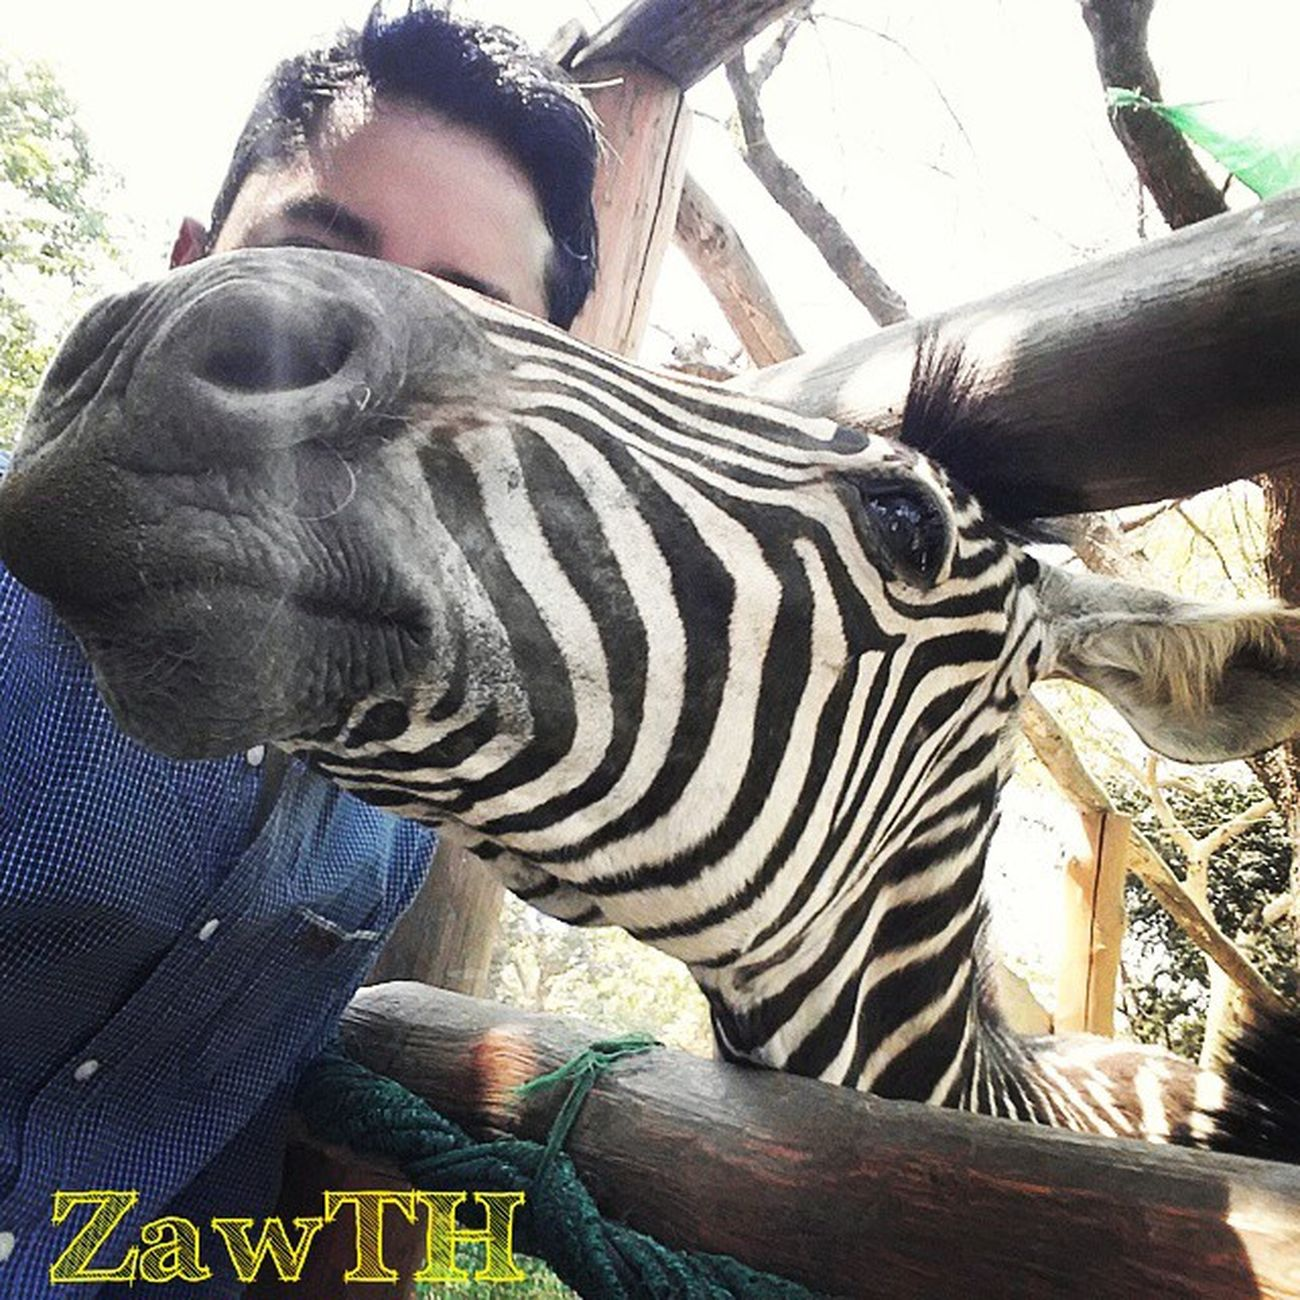 Naughty Zebra!!! ေတာ္​​ေတာ္​ ခ်ိဳးတဲ့ ဂ်ီးဘယား He doesn´t let me in the selfie. Selfie Zebra Zoo Mandalay Myanmar Myanmarphotos Vscomyanmar Igersmyanmar Igersmandalay Zawth Naughty Igglobal Rcnocrop